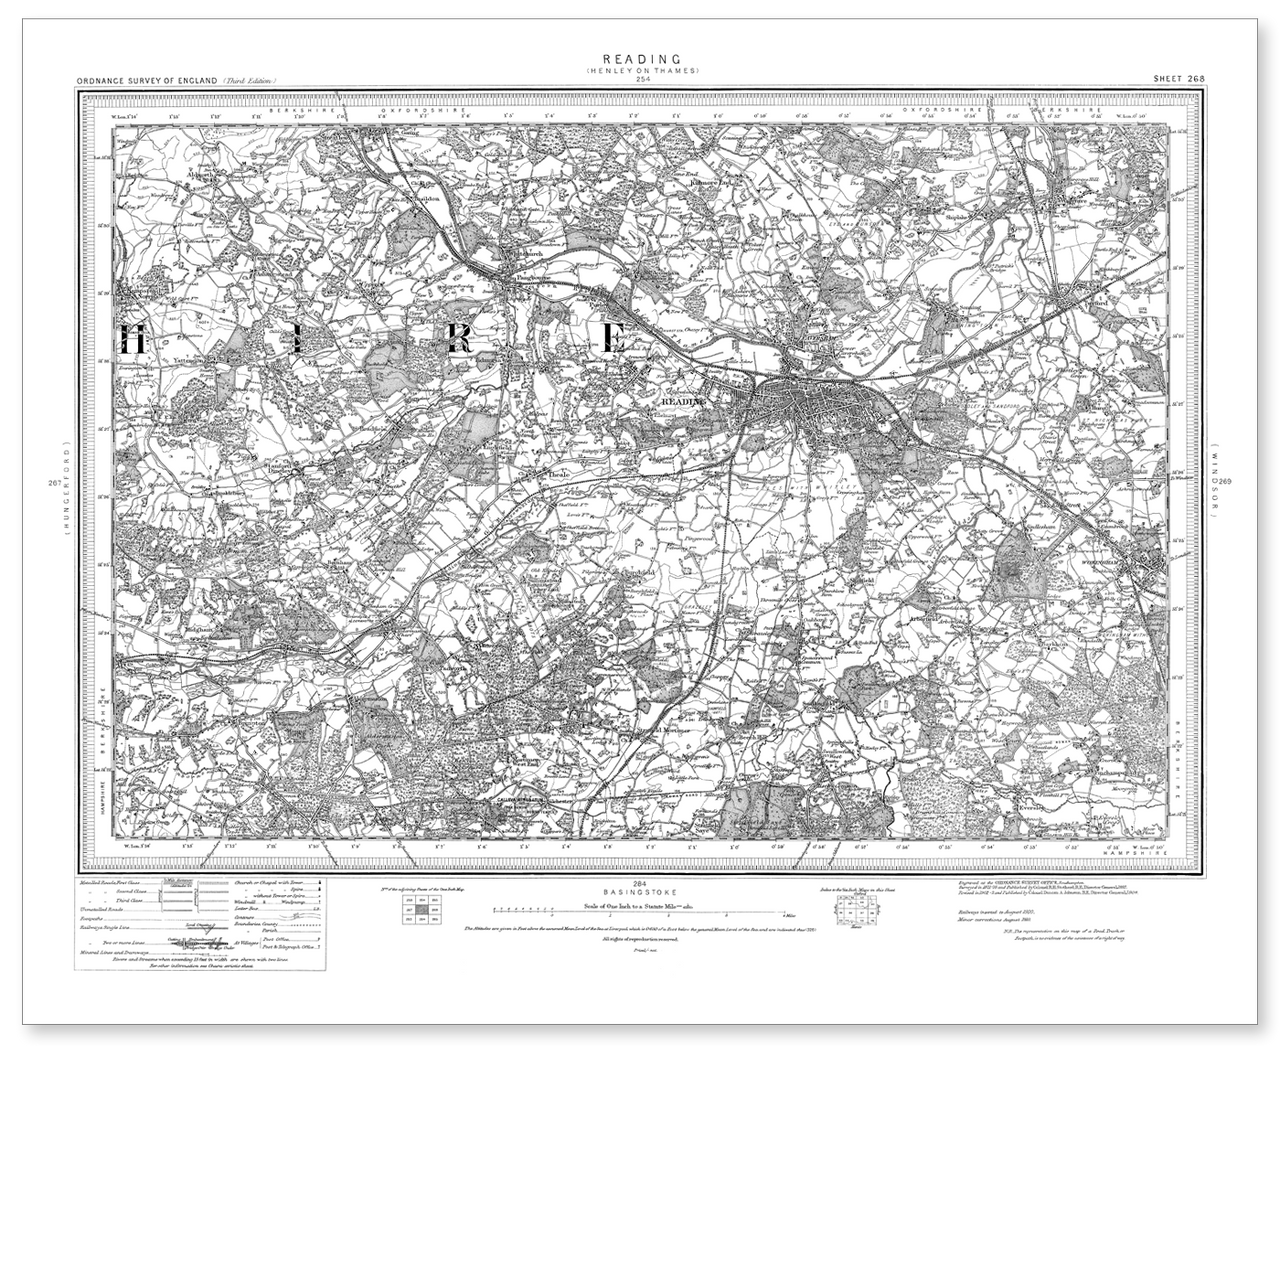 Map Of Lands End 1896-1904